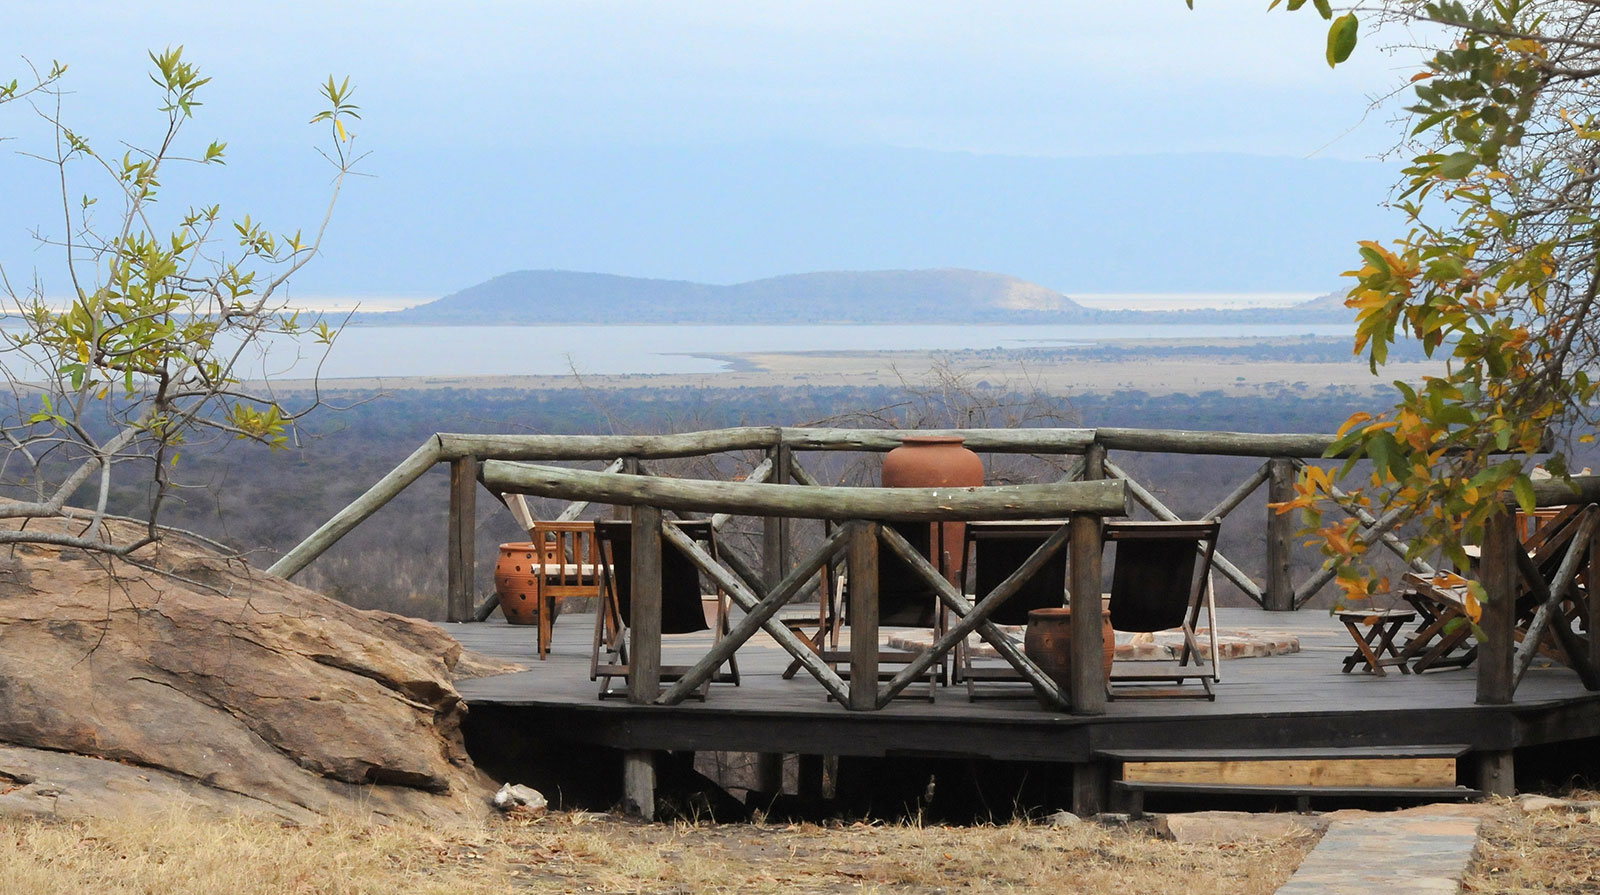 Maweninga Camp - A peaceful place to be